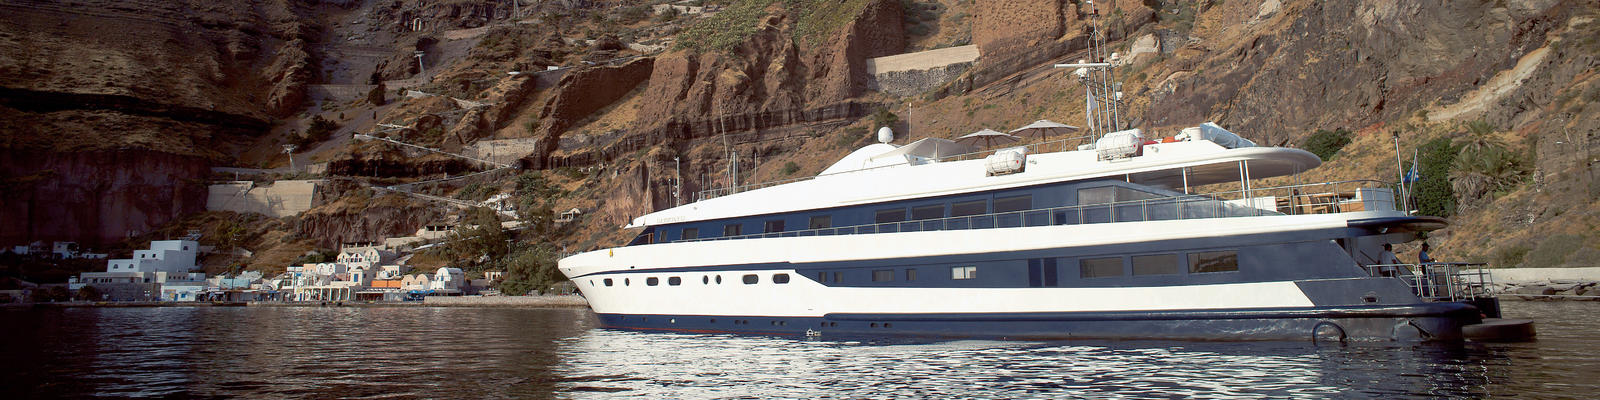 harmony g cruise ship review